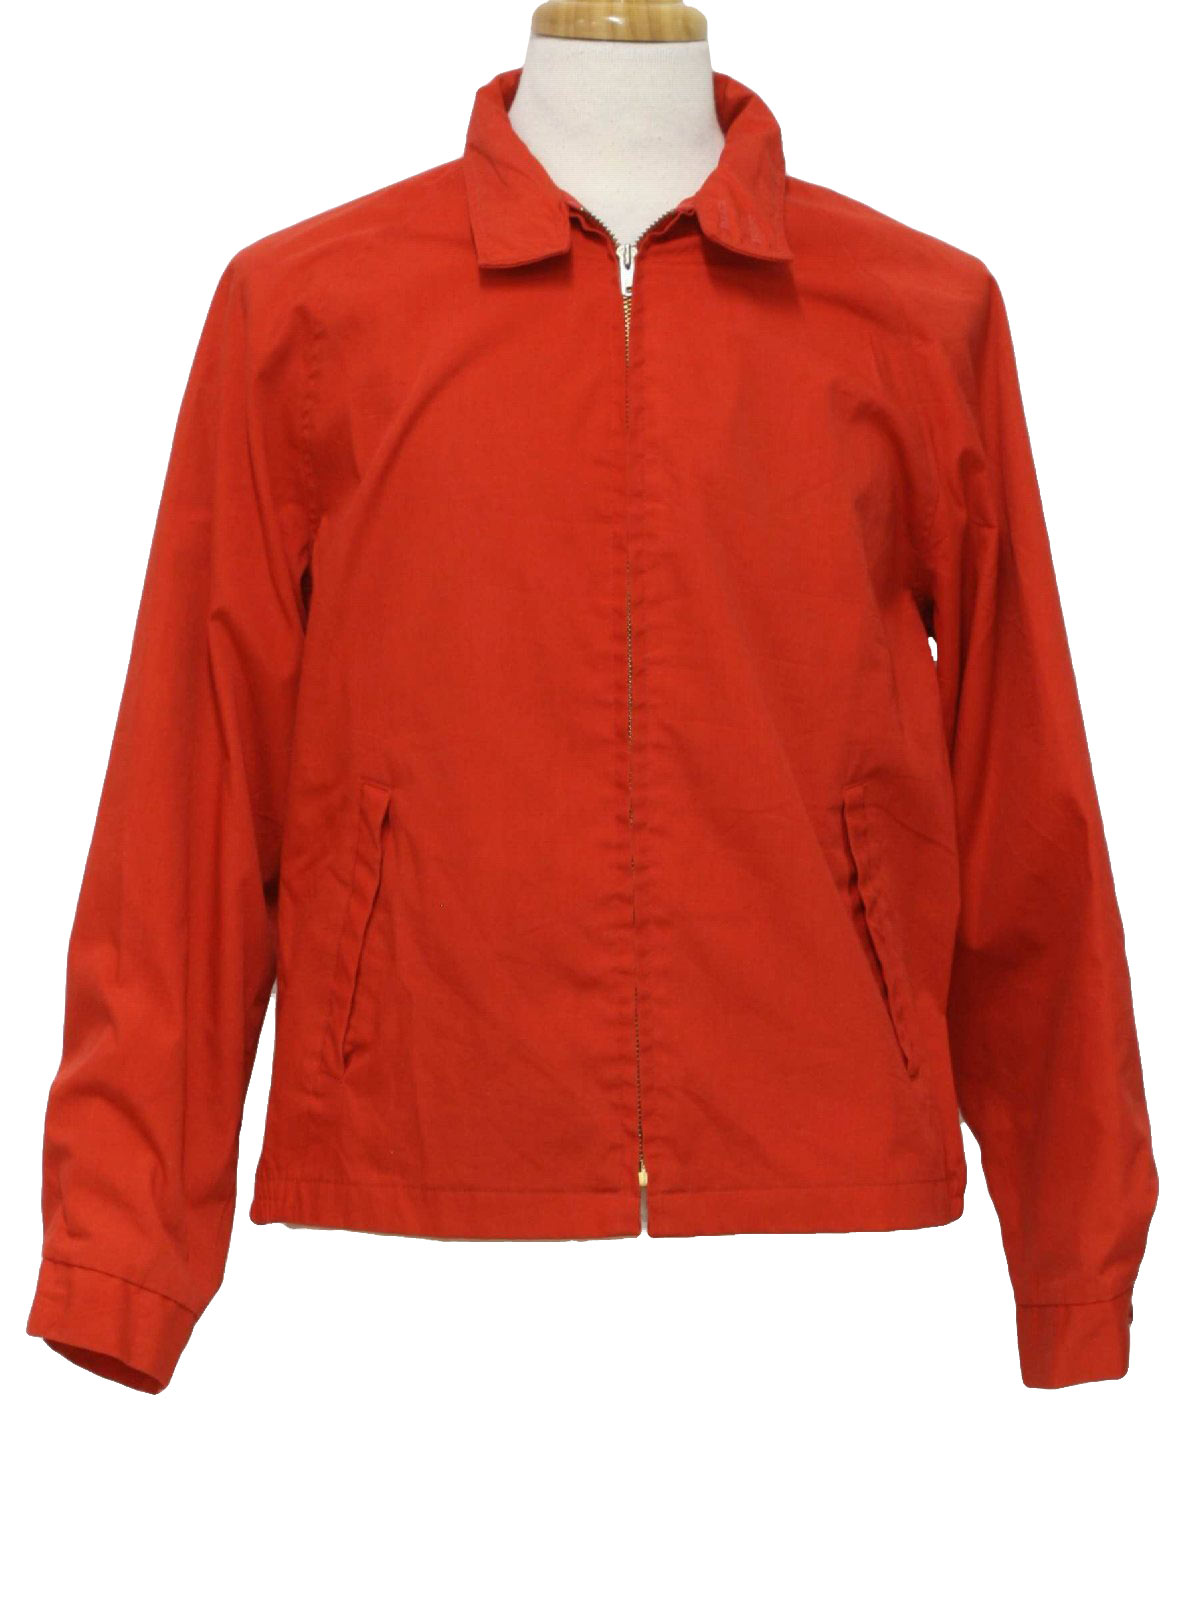 The classic look of jackets from Gap will please everyone in the family. Find the best fit for men, women, children, toddlers and babies in warm and comfortable jacket selections.